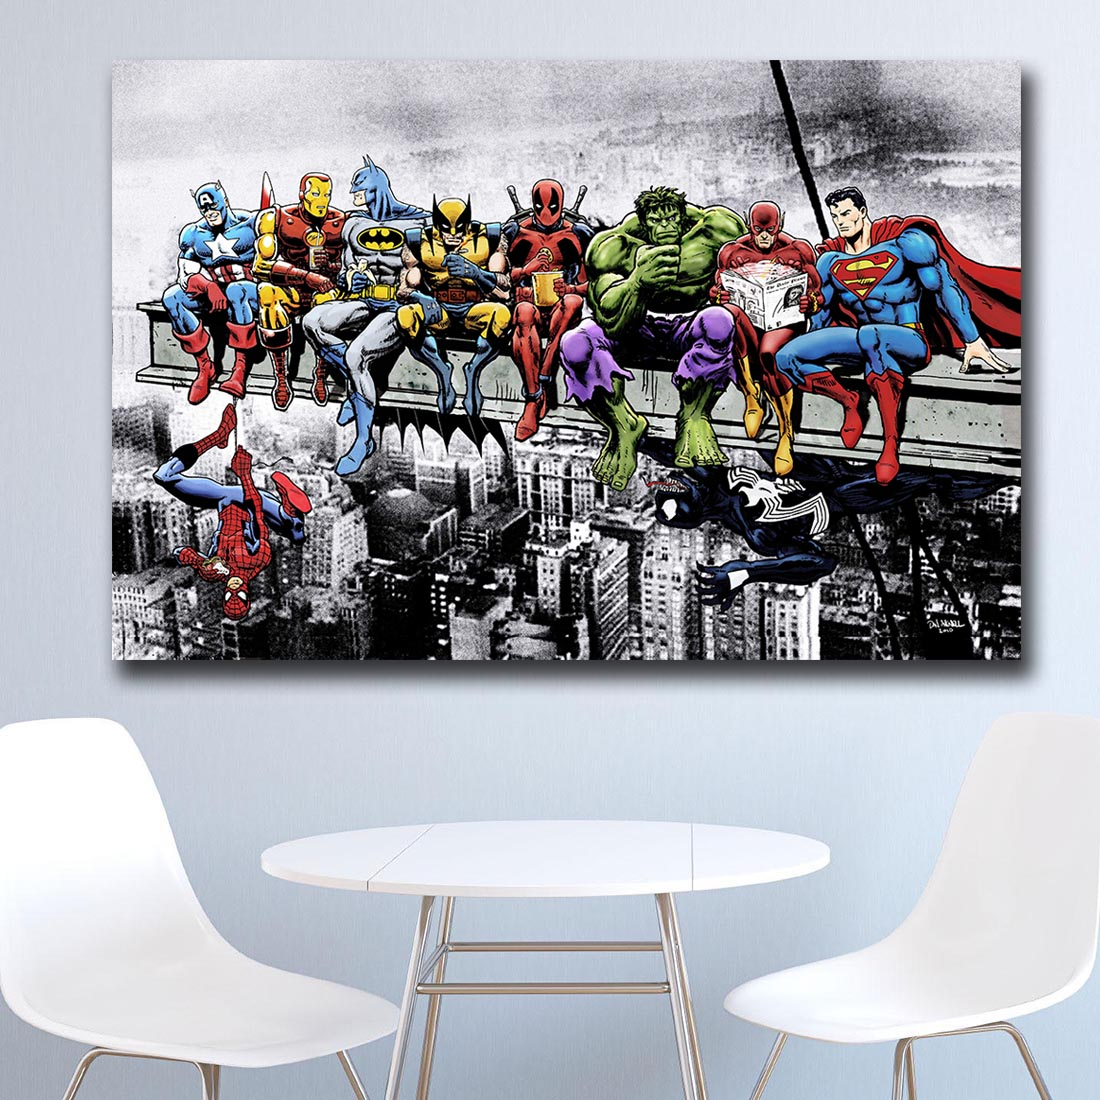 Mklql Superheroes Lunch Atop A Skyscraper Canvas Wall Pictures for Living Room Office Bedroom Modern Canvas Oil Painting